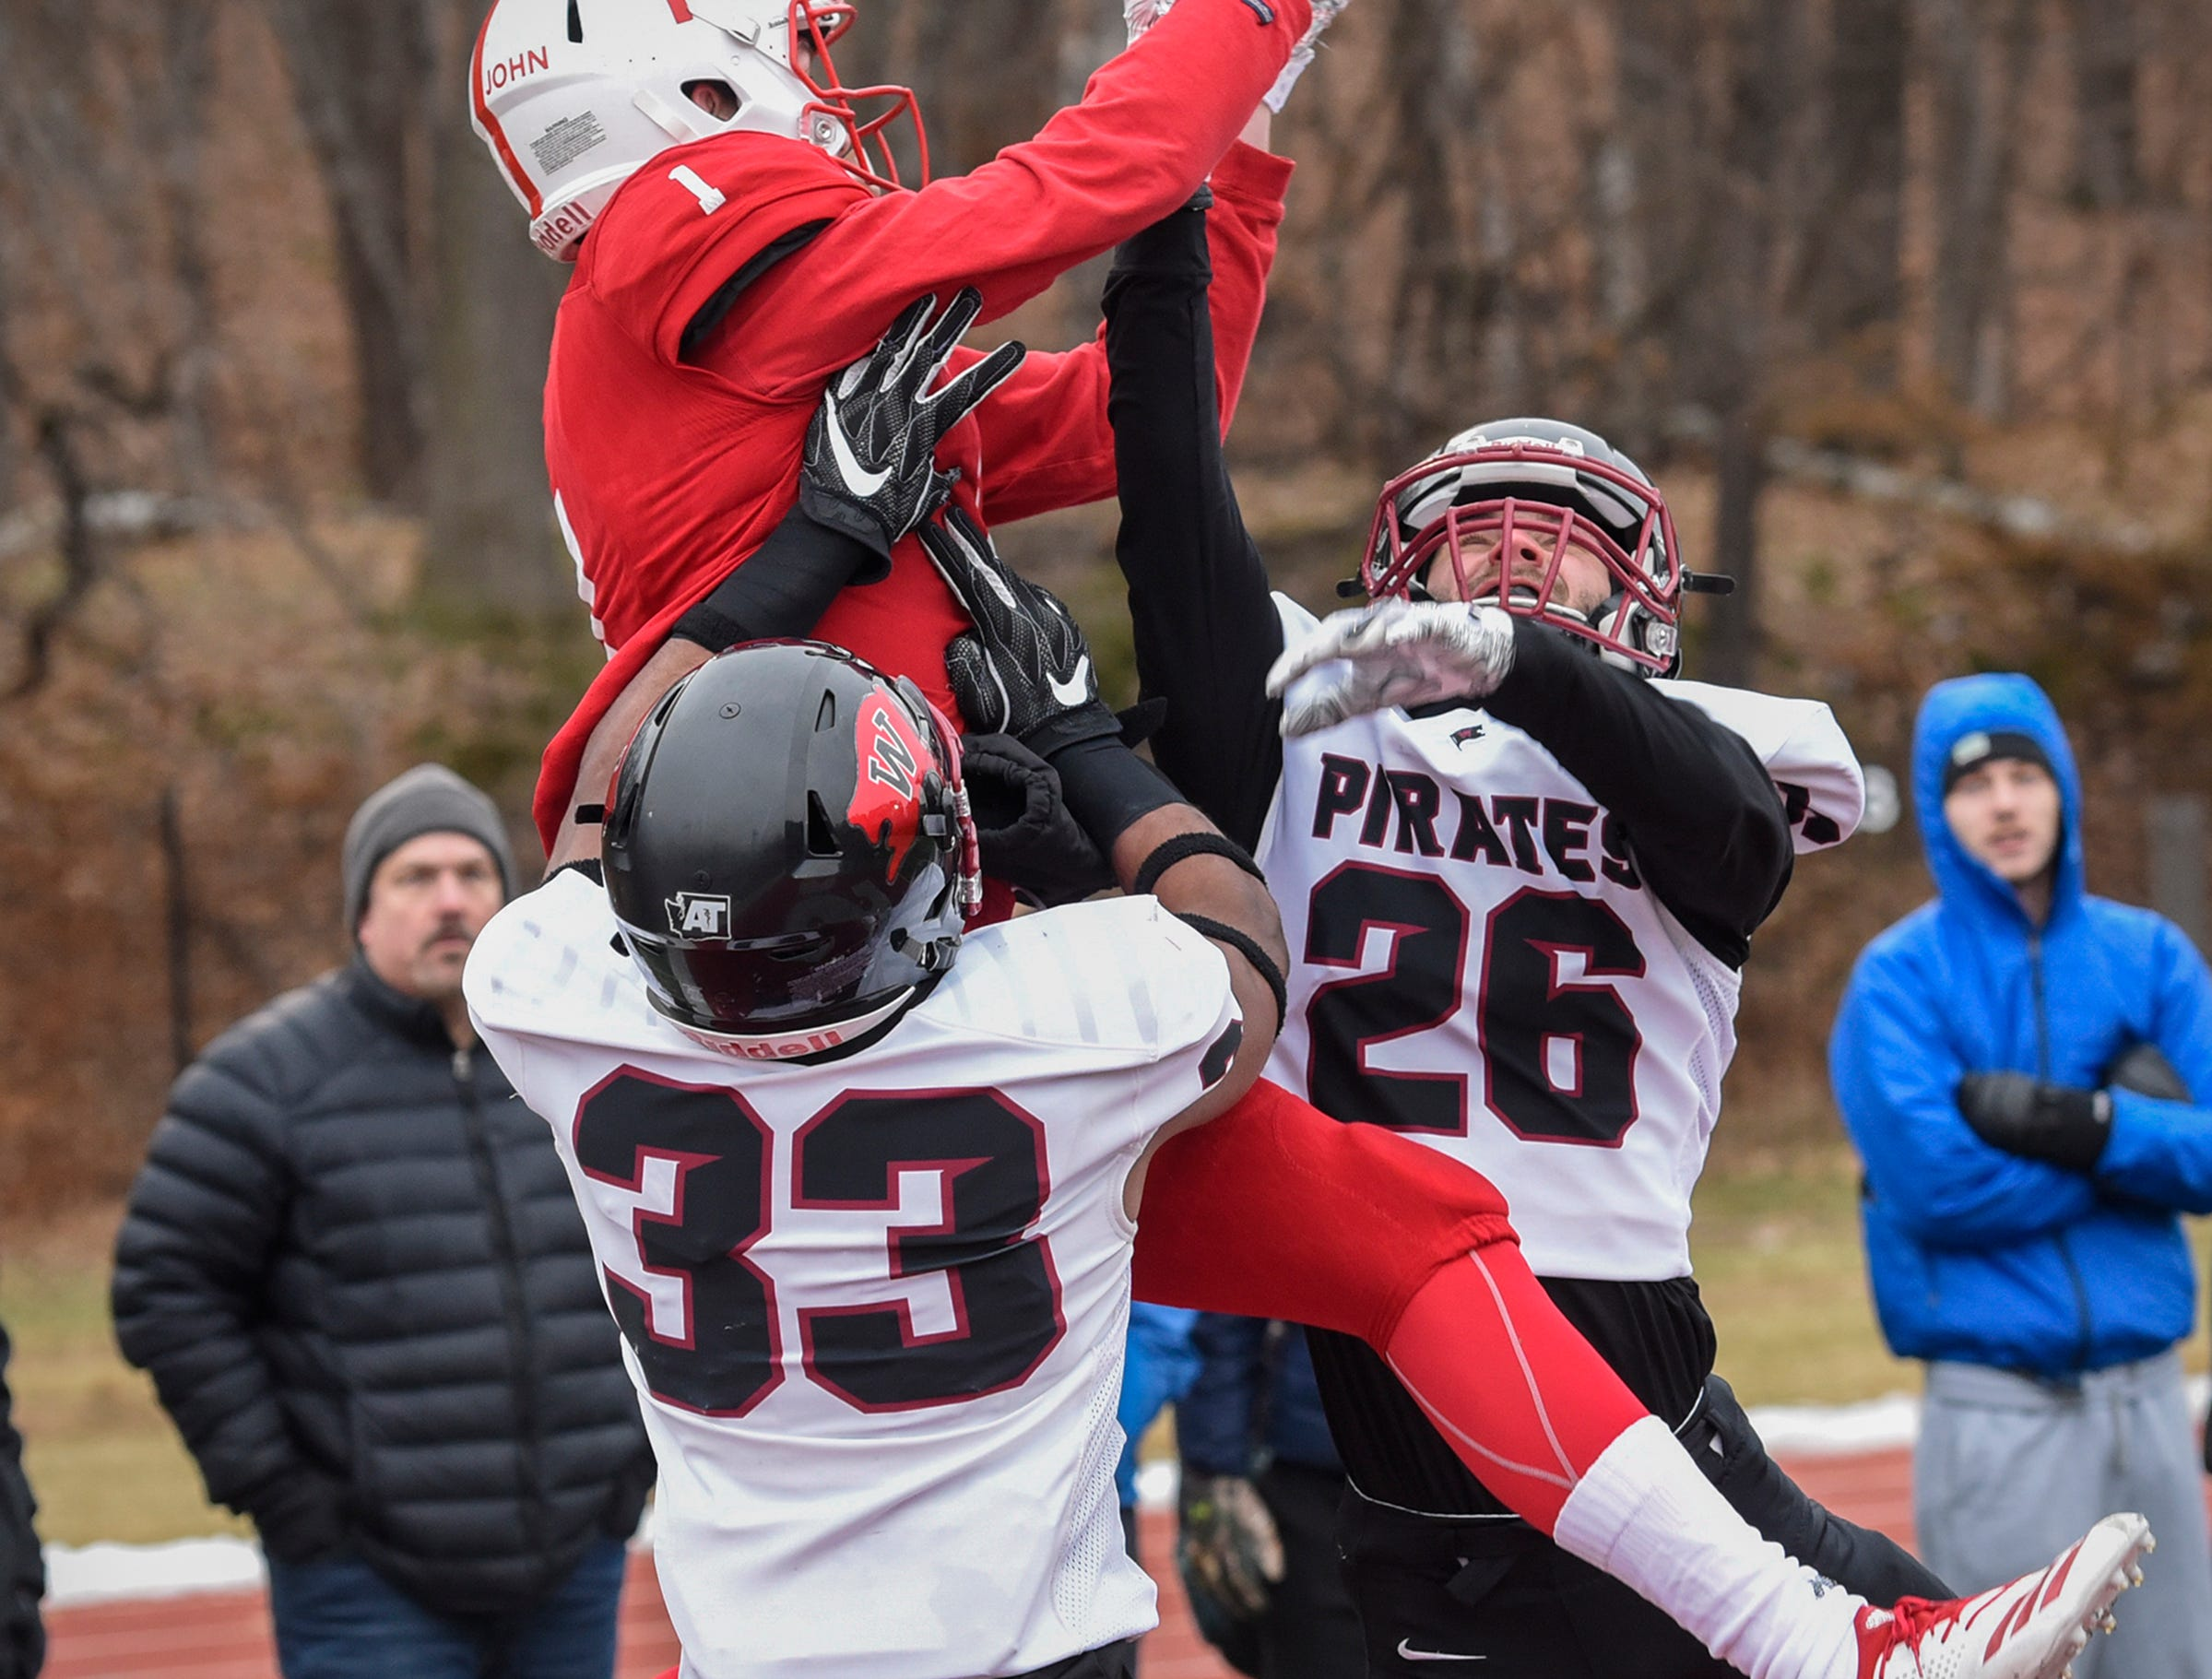 Joey Eckhoff of St. John's leaps to make a catch during the Saturday, Nov. 24, game against Whitworth at Clemens Stadium in Collegeville.